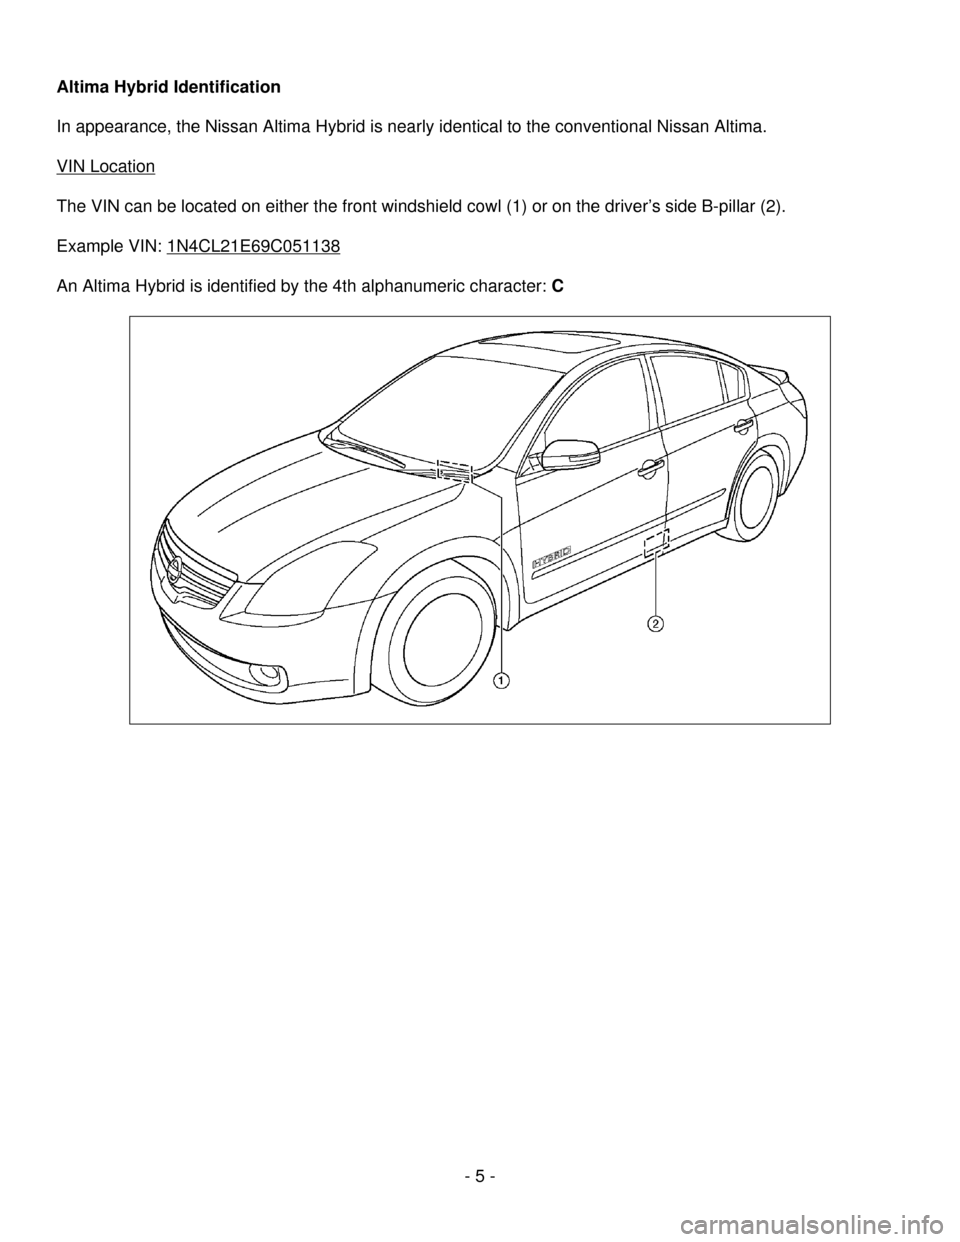 NISSAN ALTIMA HYBRID 2009 L32A / 4.G Dismantling Guide, Page 5